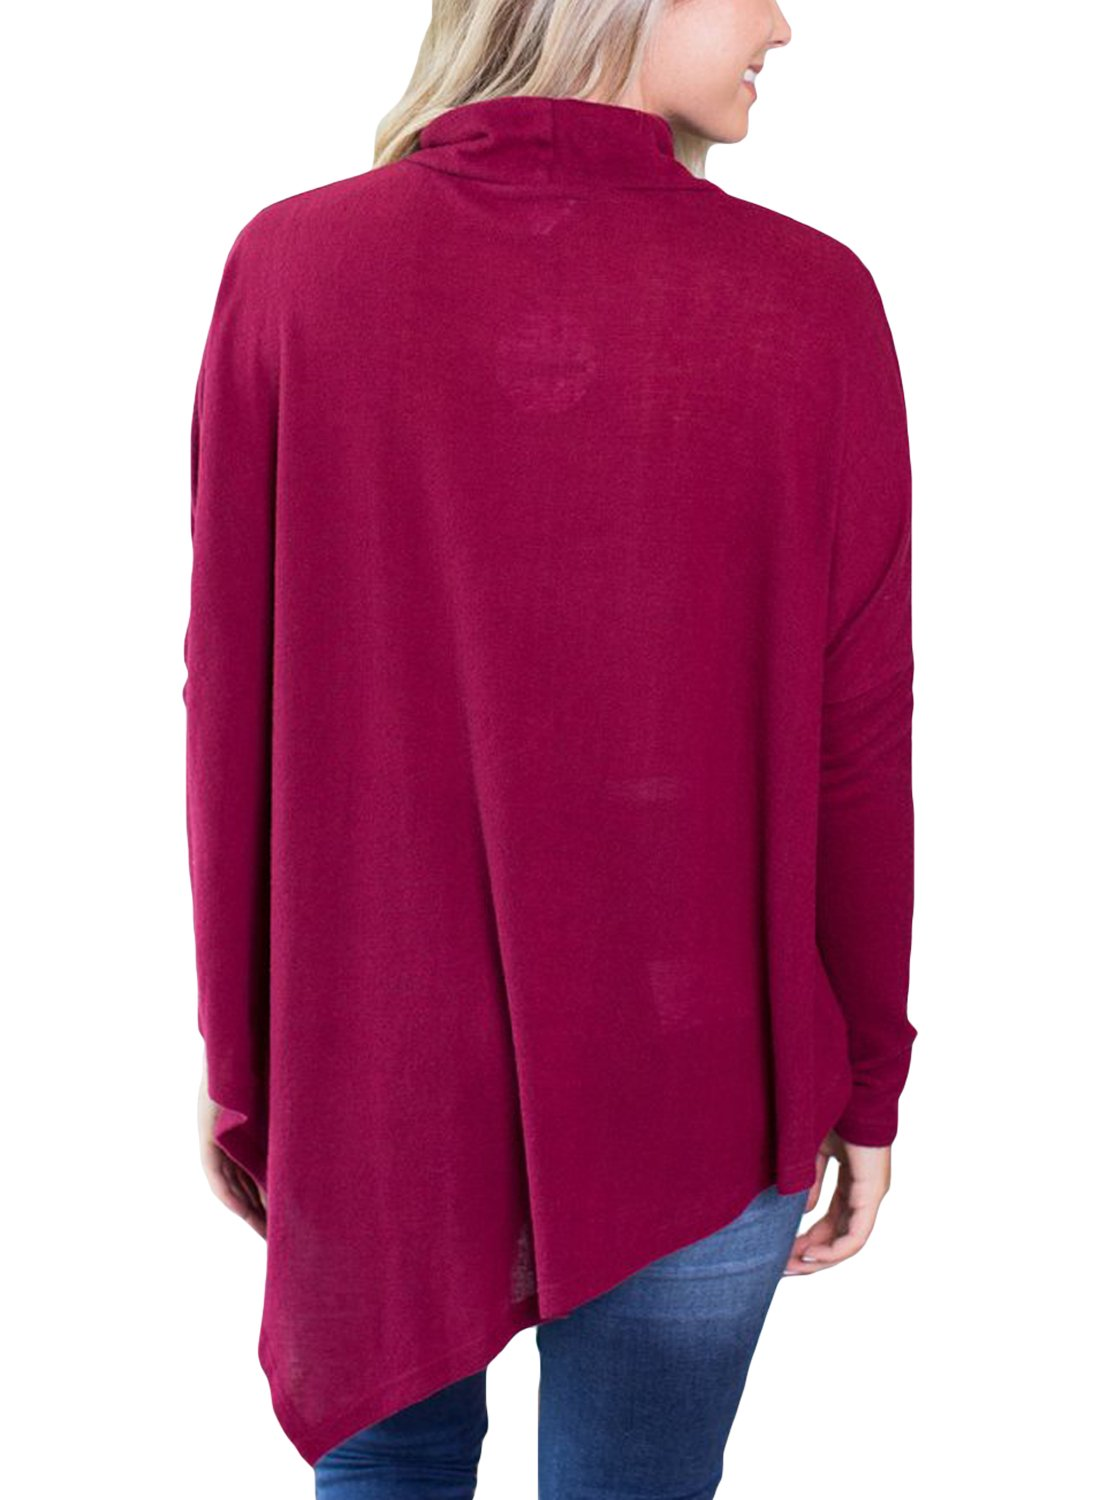 FARYSAYS Women's Casual Long Sleeve Turtleneck Loose Fit Handkerchief Hem Tunic Tops Red Large